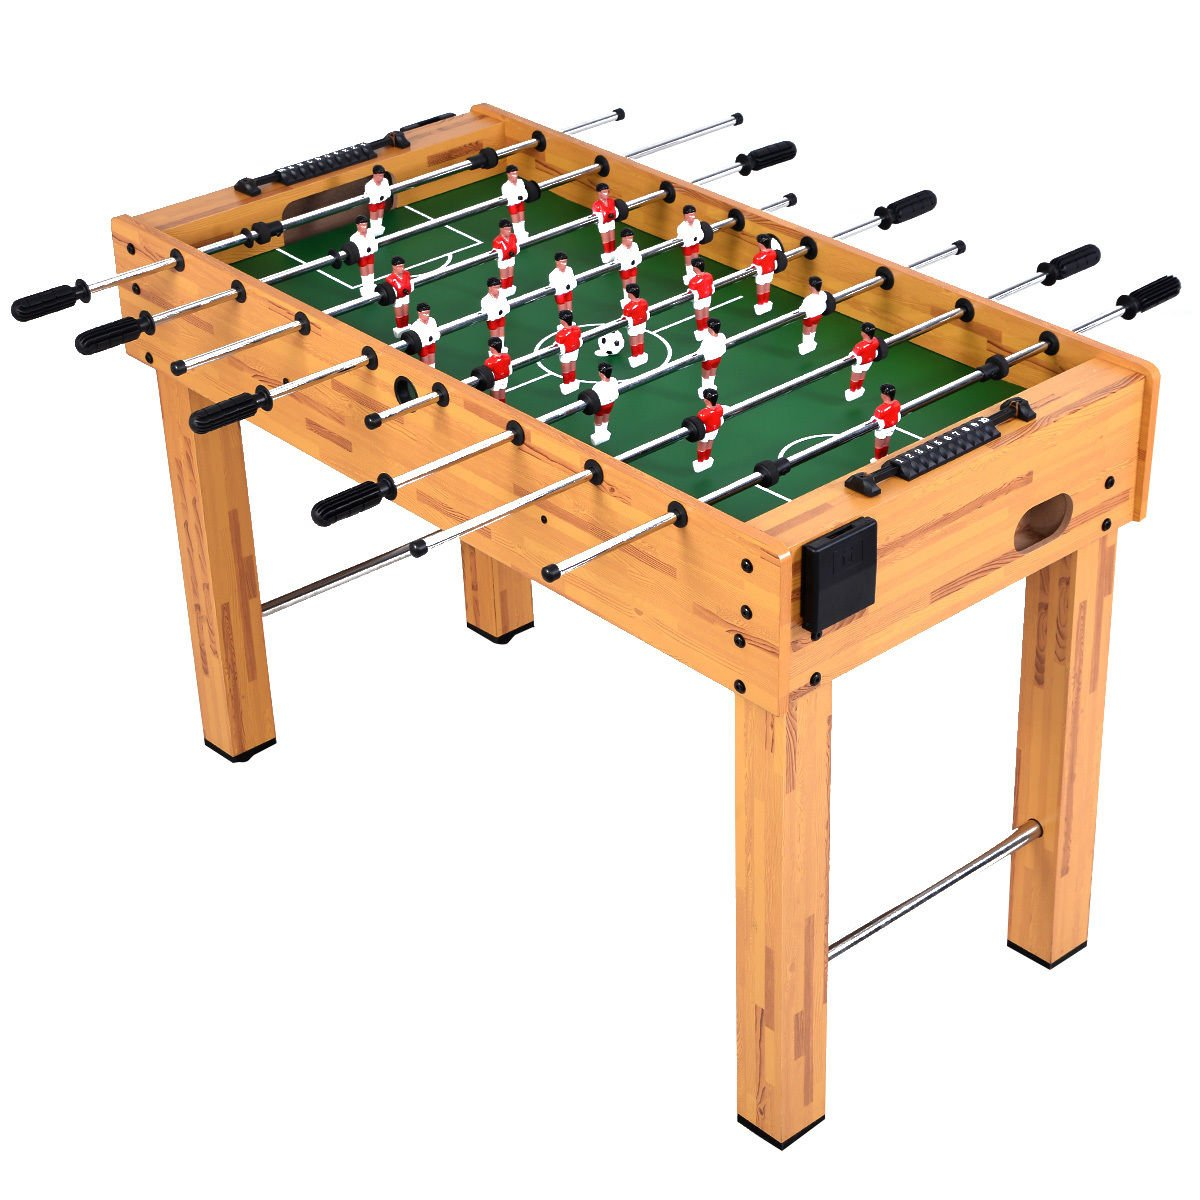 Giantex Foosball Soccer Table 48'' Competition Sized Arcade Game Room Hockey Family Sport by Giantex